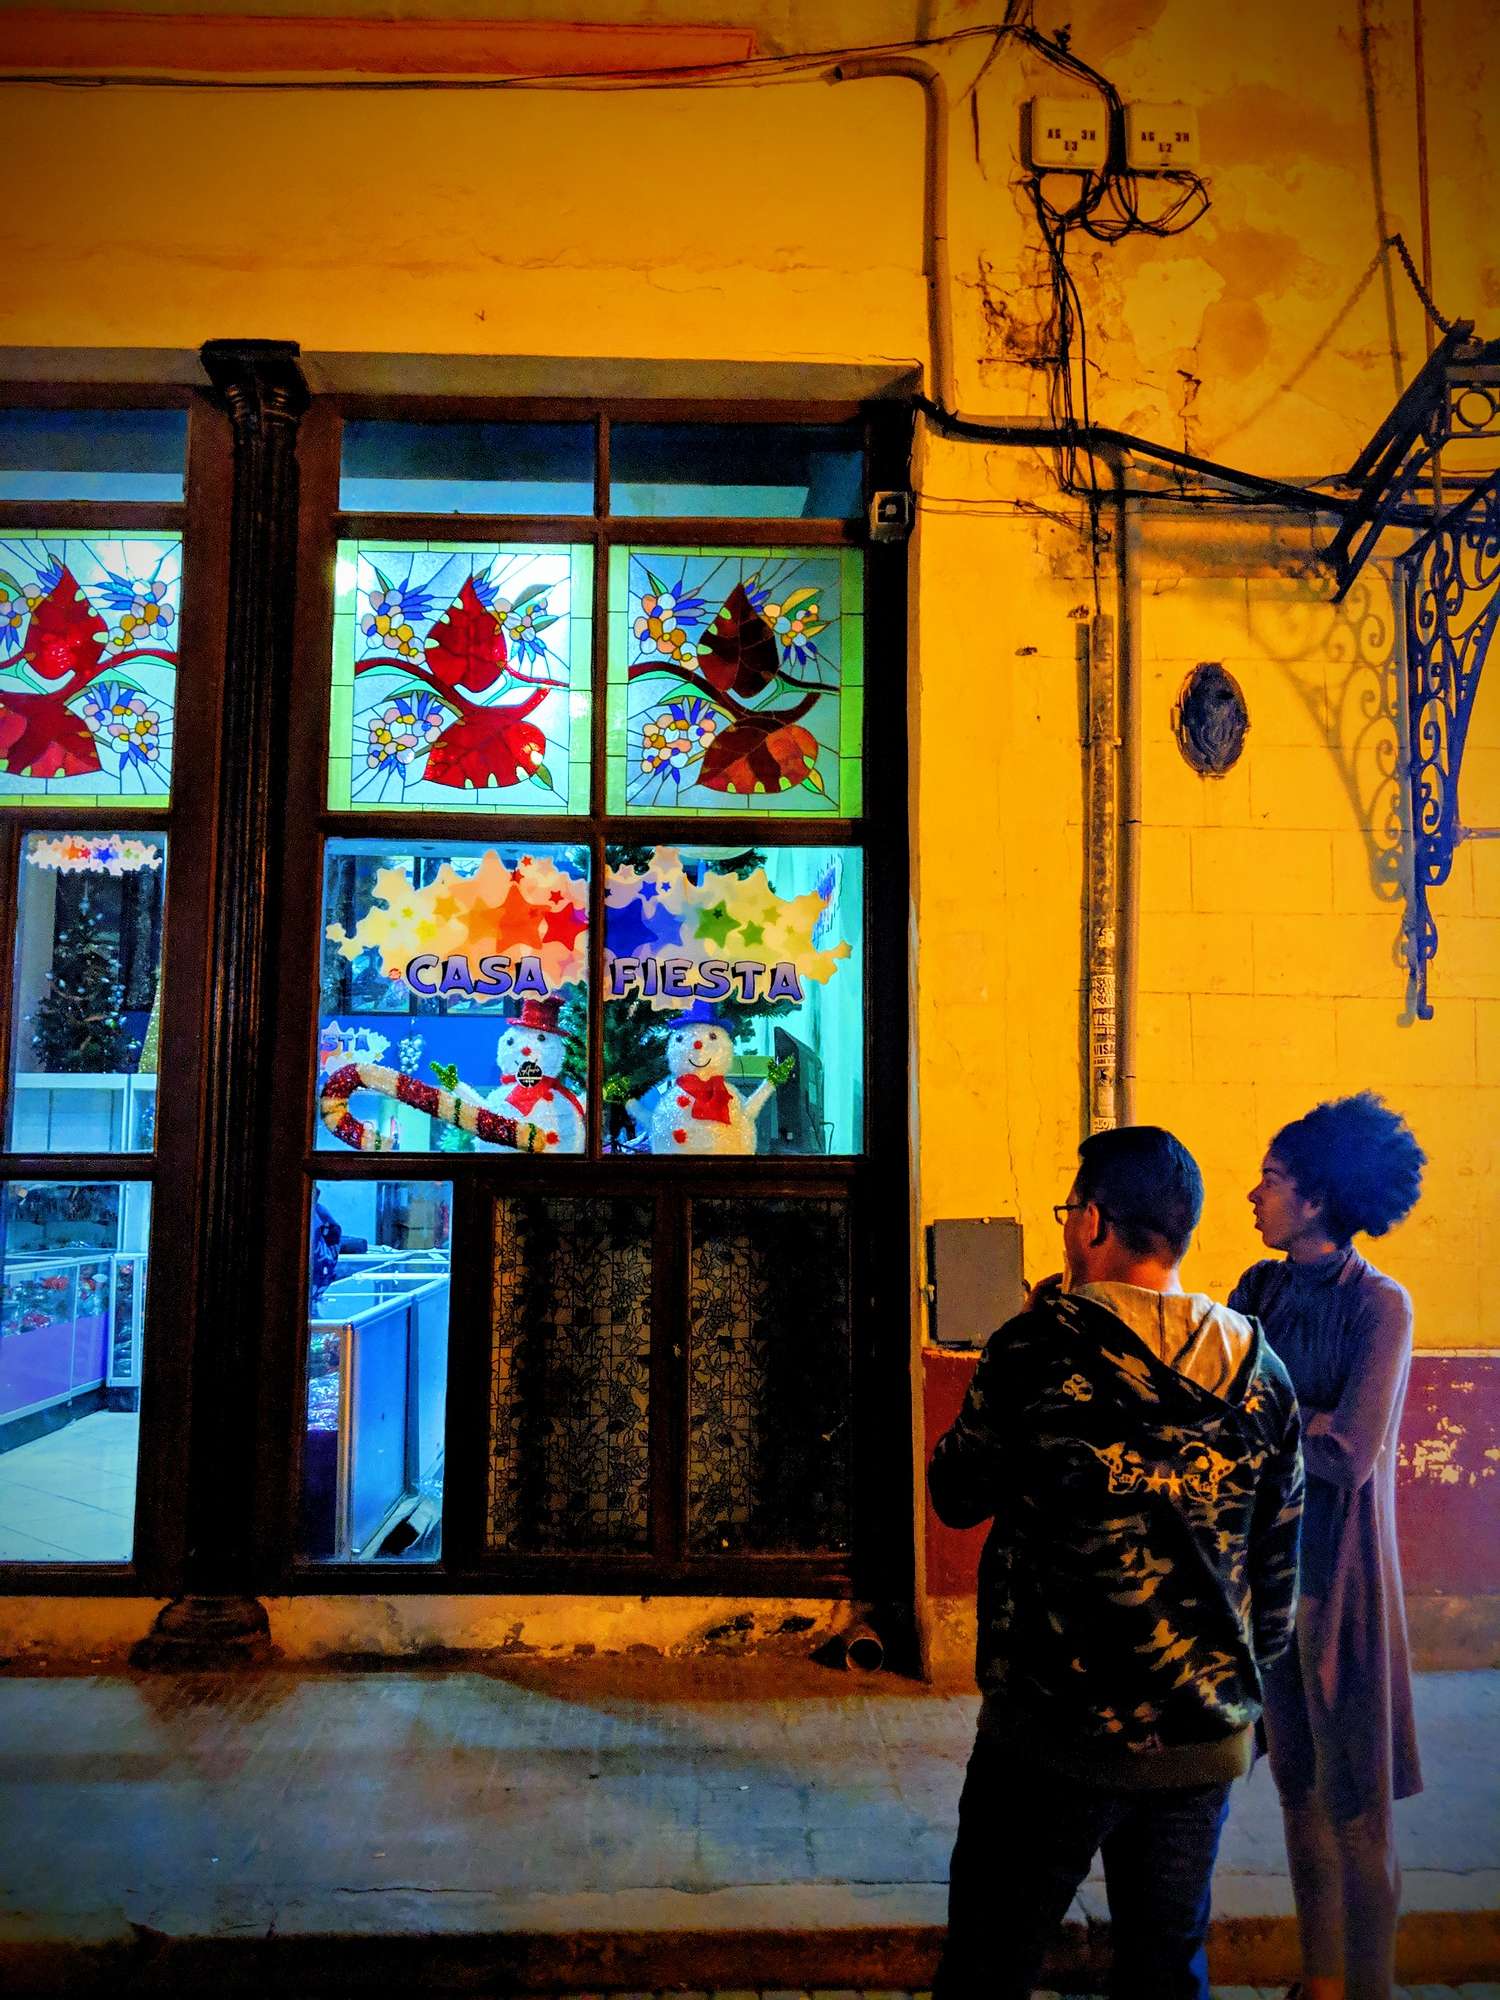 Christmas in Cuba is a new holiday but Christmas stores are popping up in Havana.